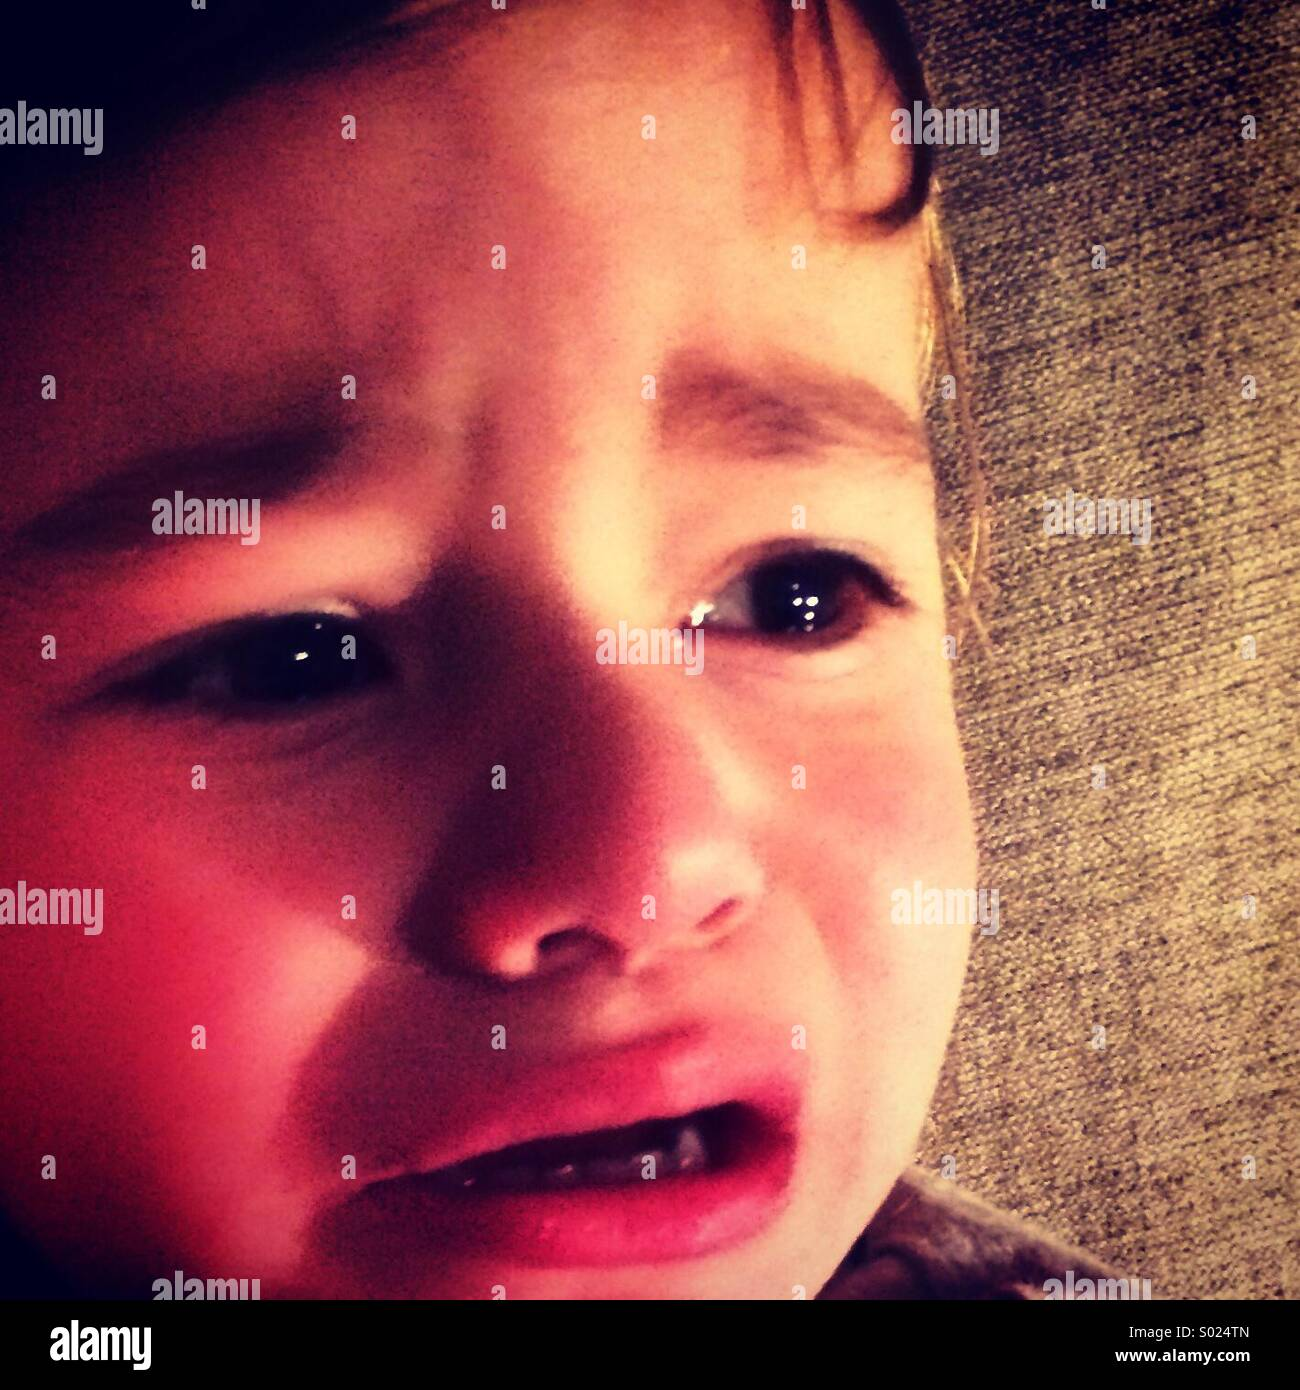 Two year old boy crying. - Stock Image